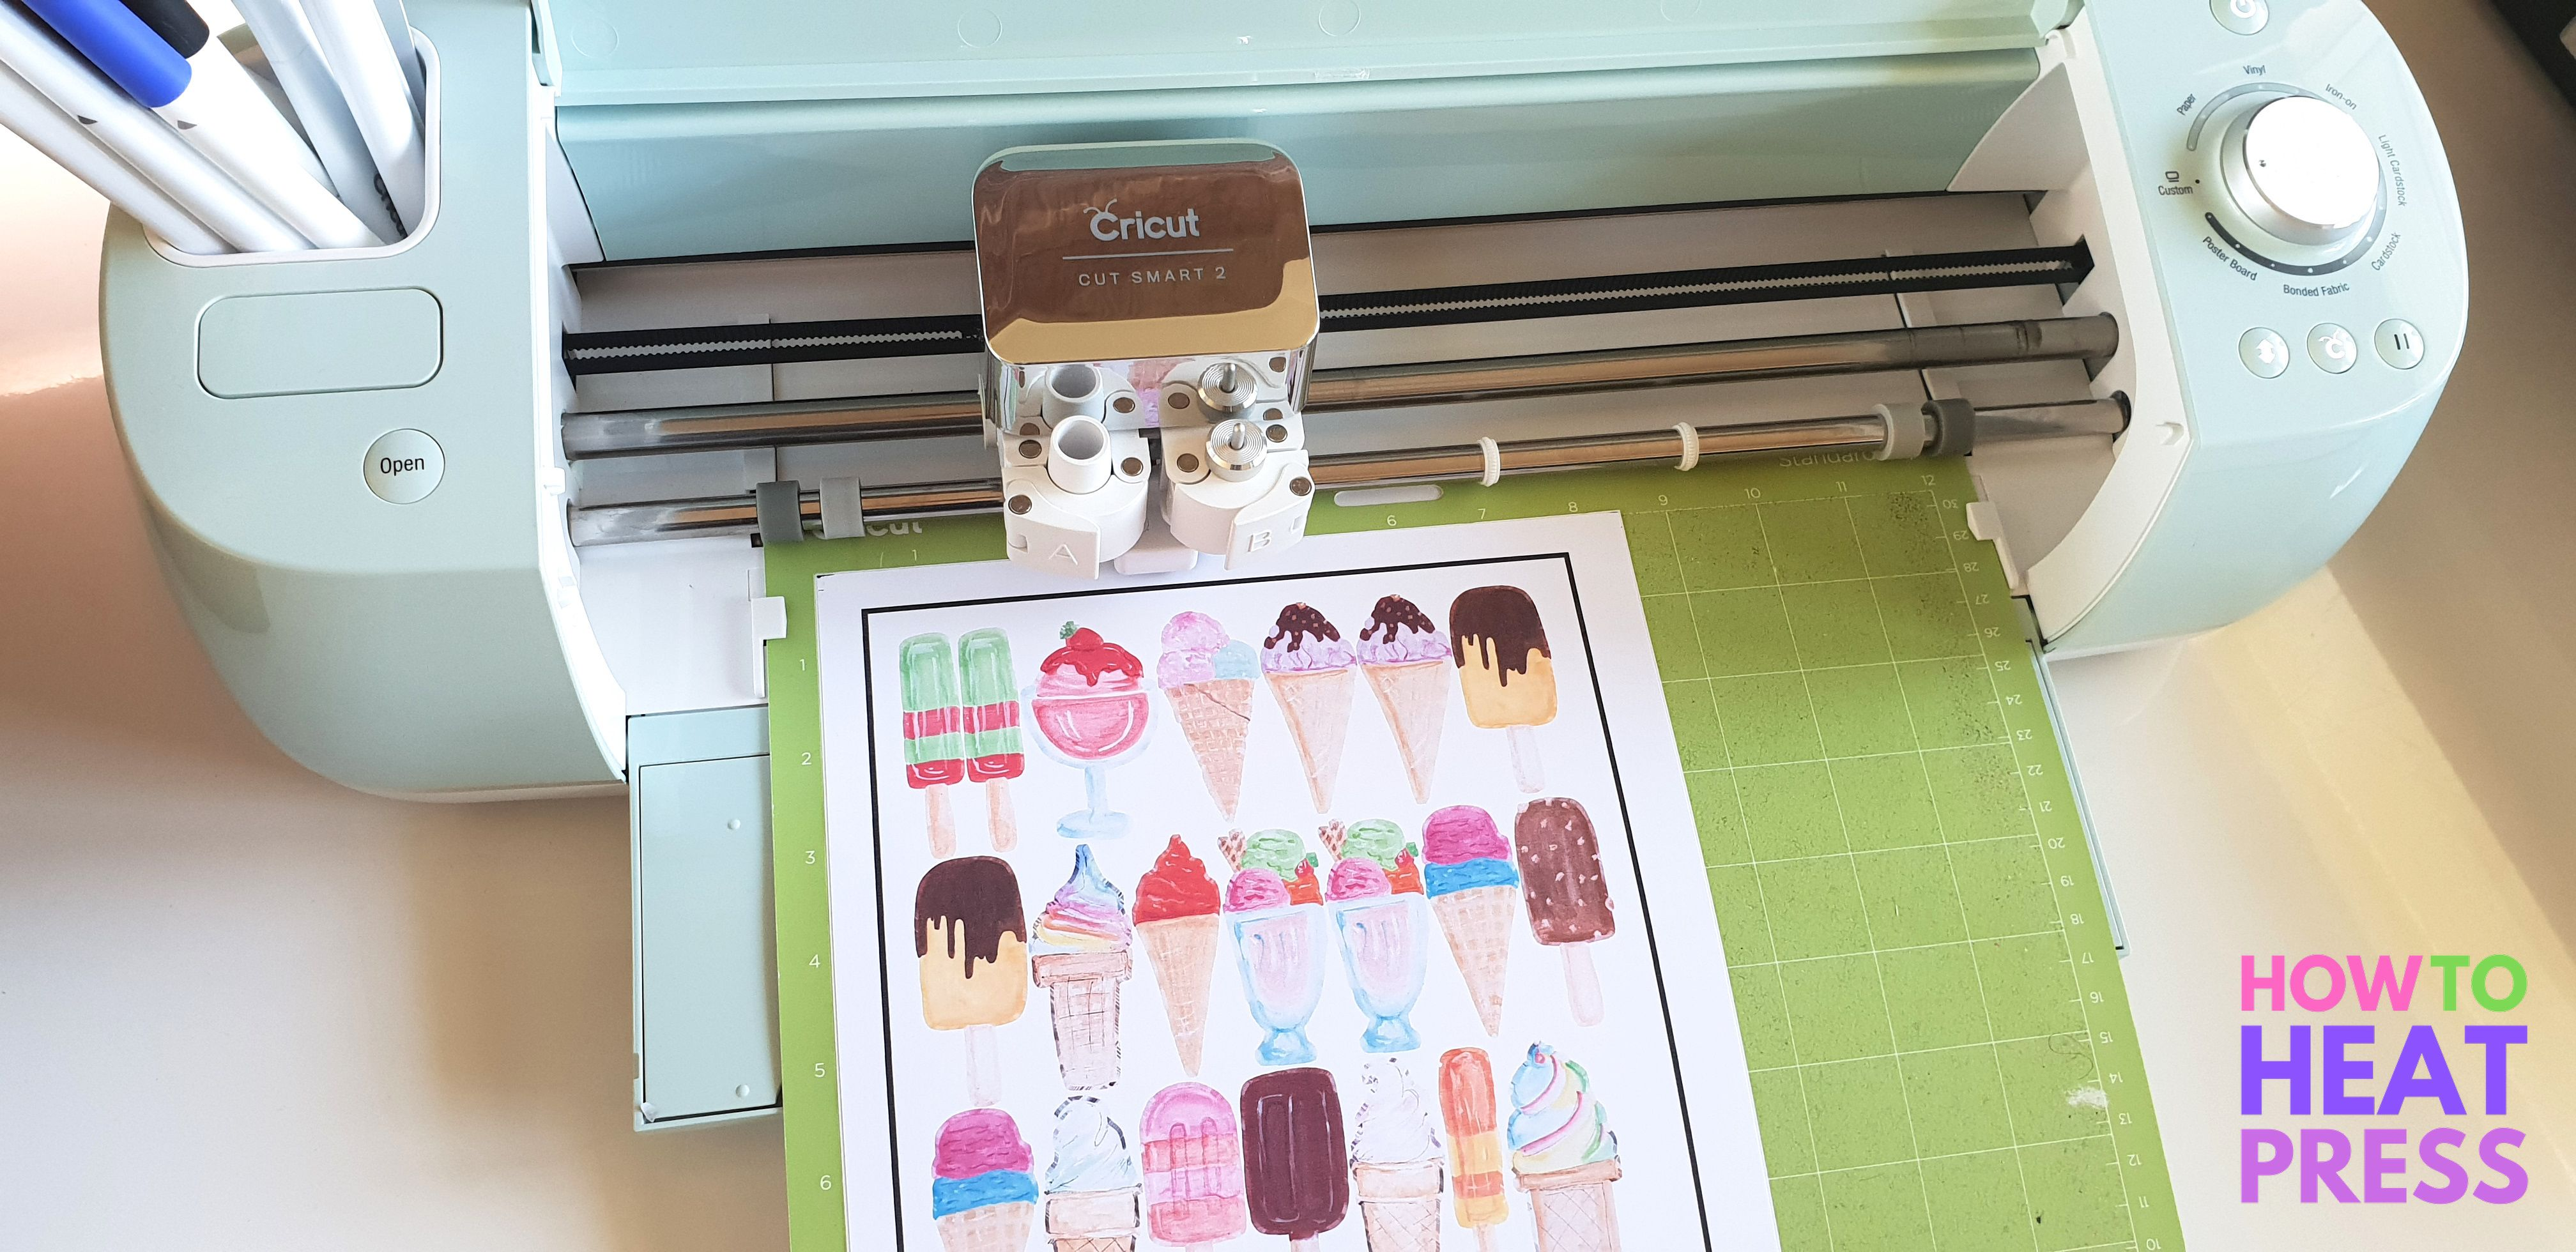 How To Use Cricut Print And Cut With Printable Vinyl  DIY Stickers! is part of Cricut print and cut, Printable vinyl, Diy vinyl, Cricut, Diy stickers, Heat transfer vinyl projects - Cricut printable vinyl is great for using the Cricut print & cut feature in Design Space  Check out my print then cut project & don't miss